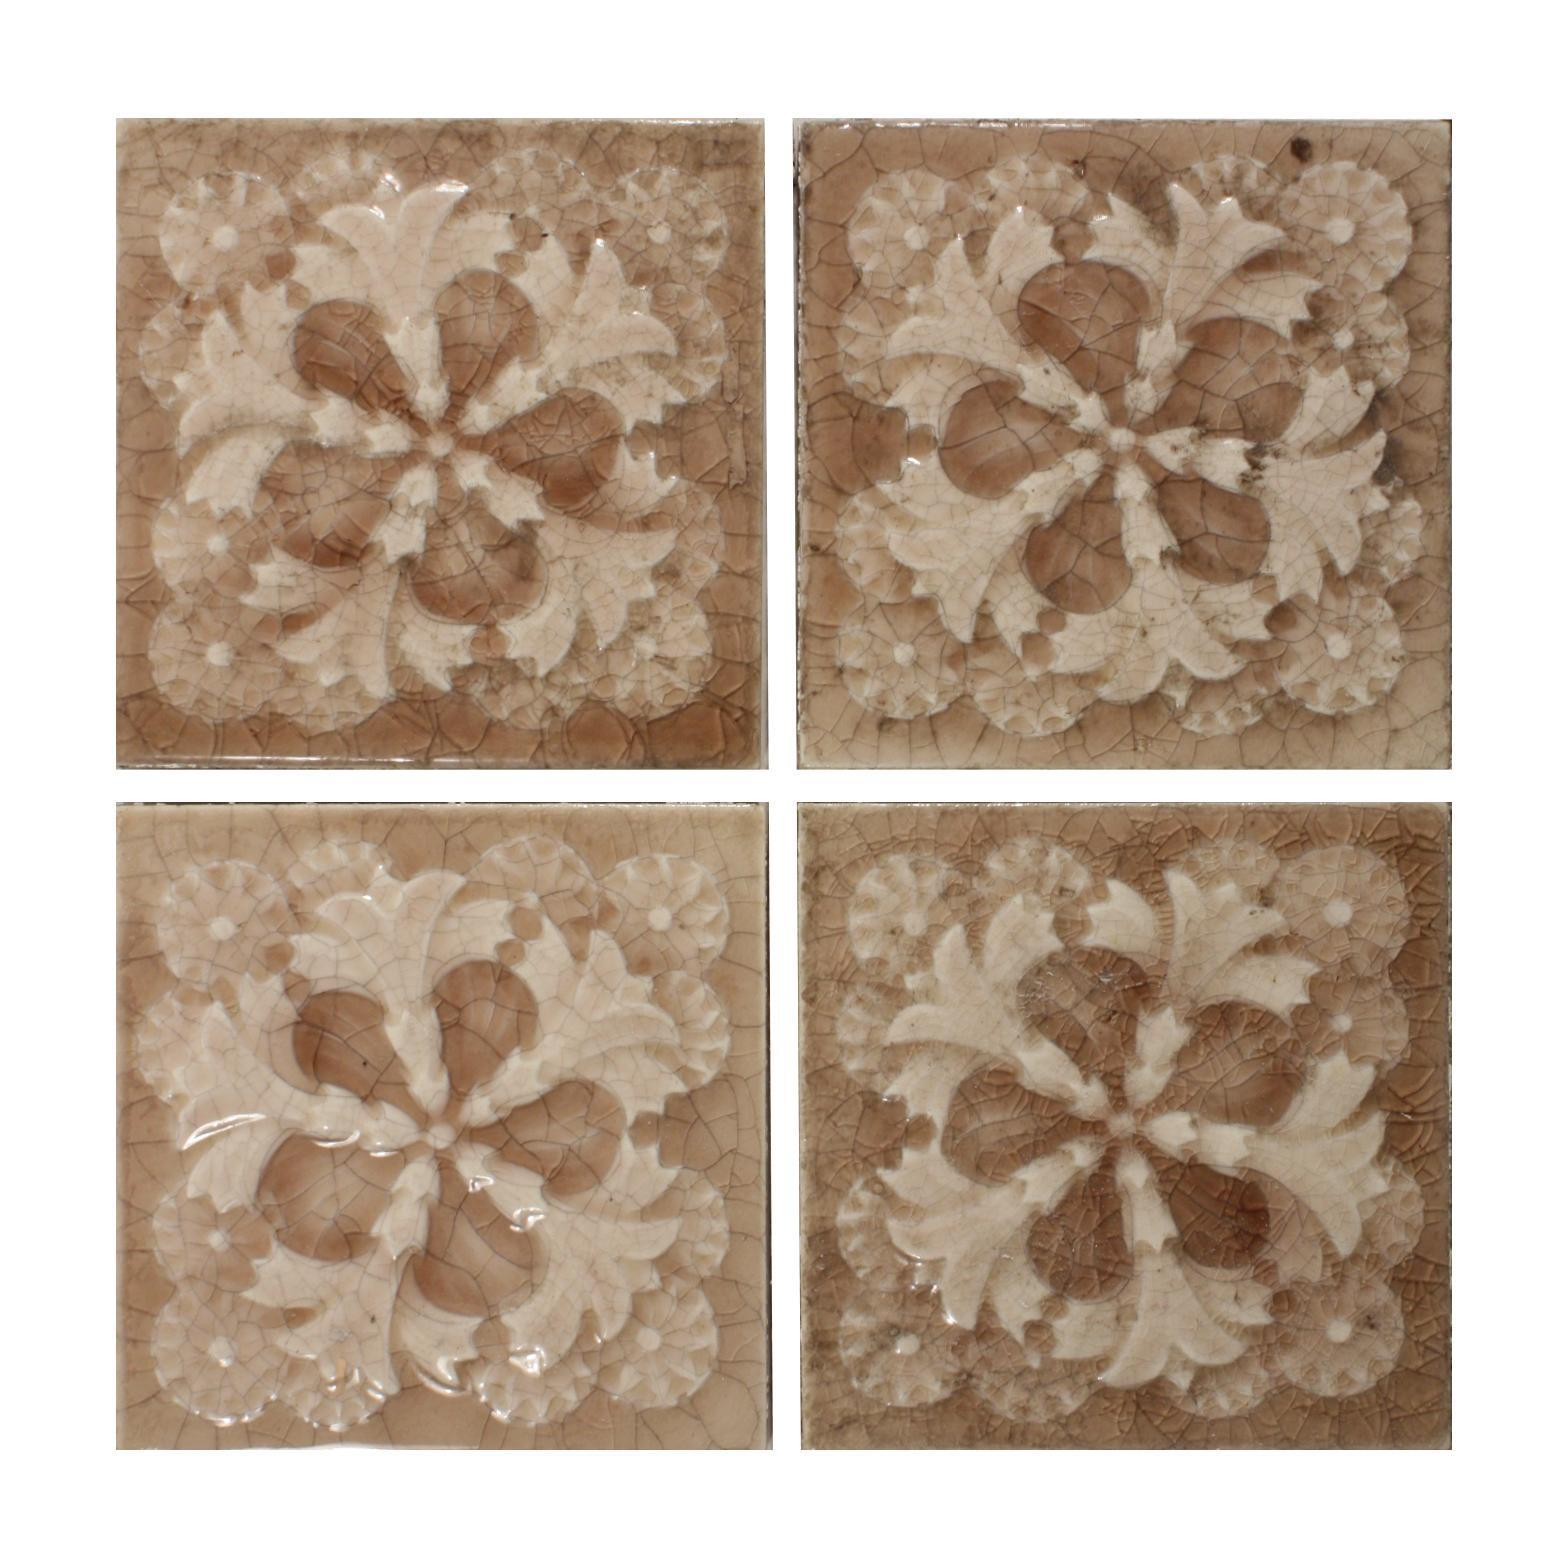 """Antique Tile with Stylized Floral Design, 6"""" x 6"""", Providential Tile Co."""